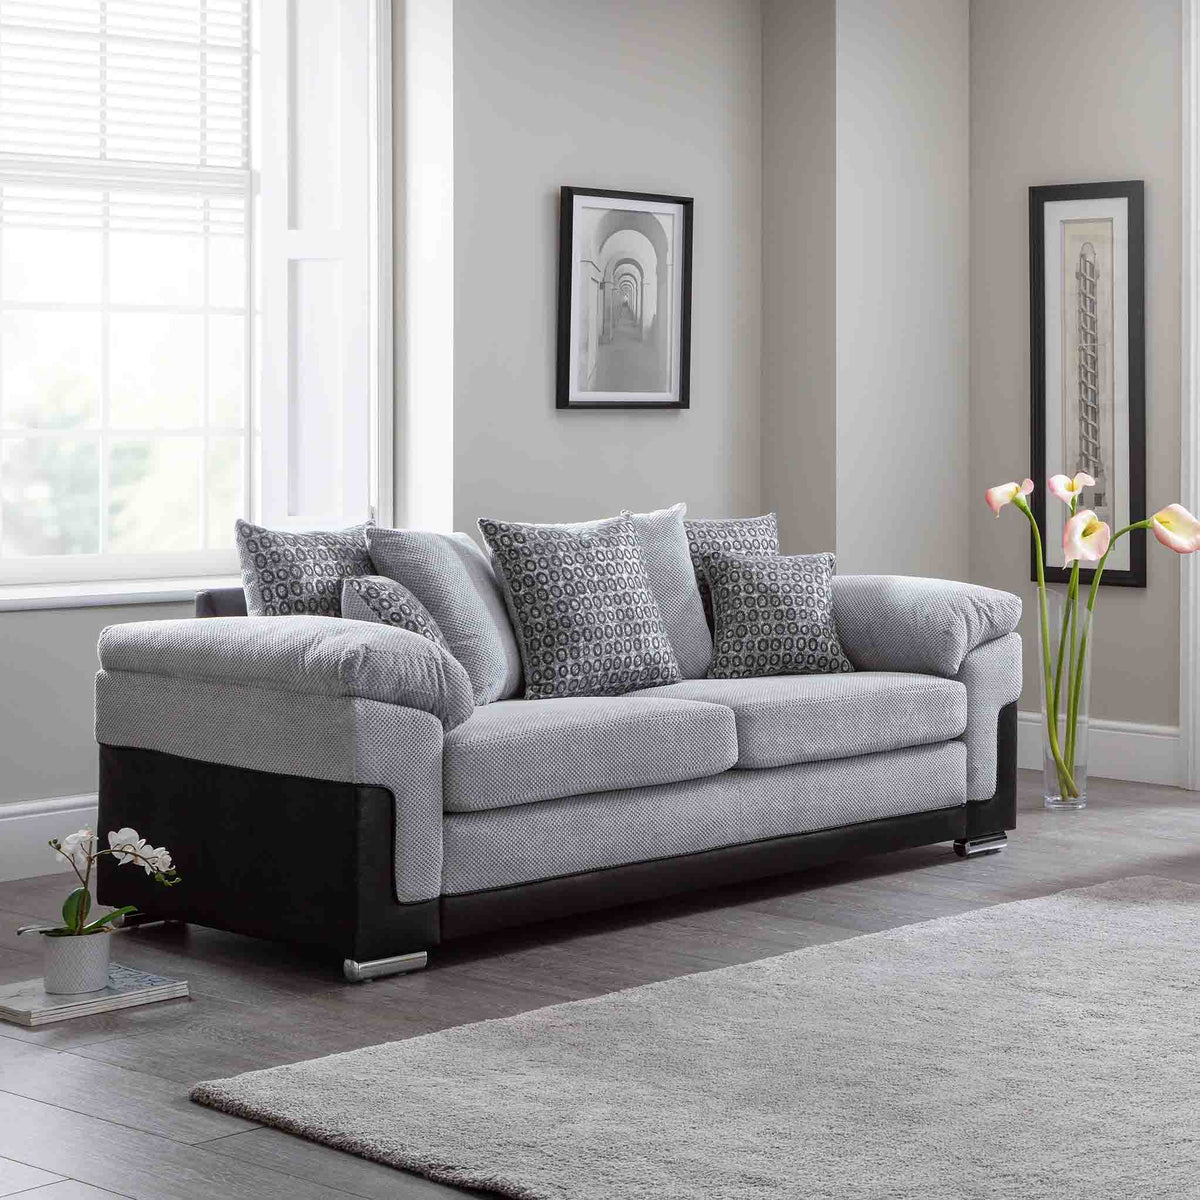 Ameba Silver 3 Seater Fabric & Faux Leather Sofa lifestyle image